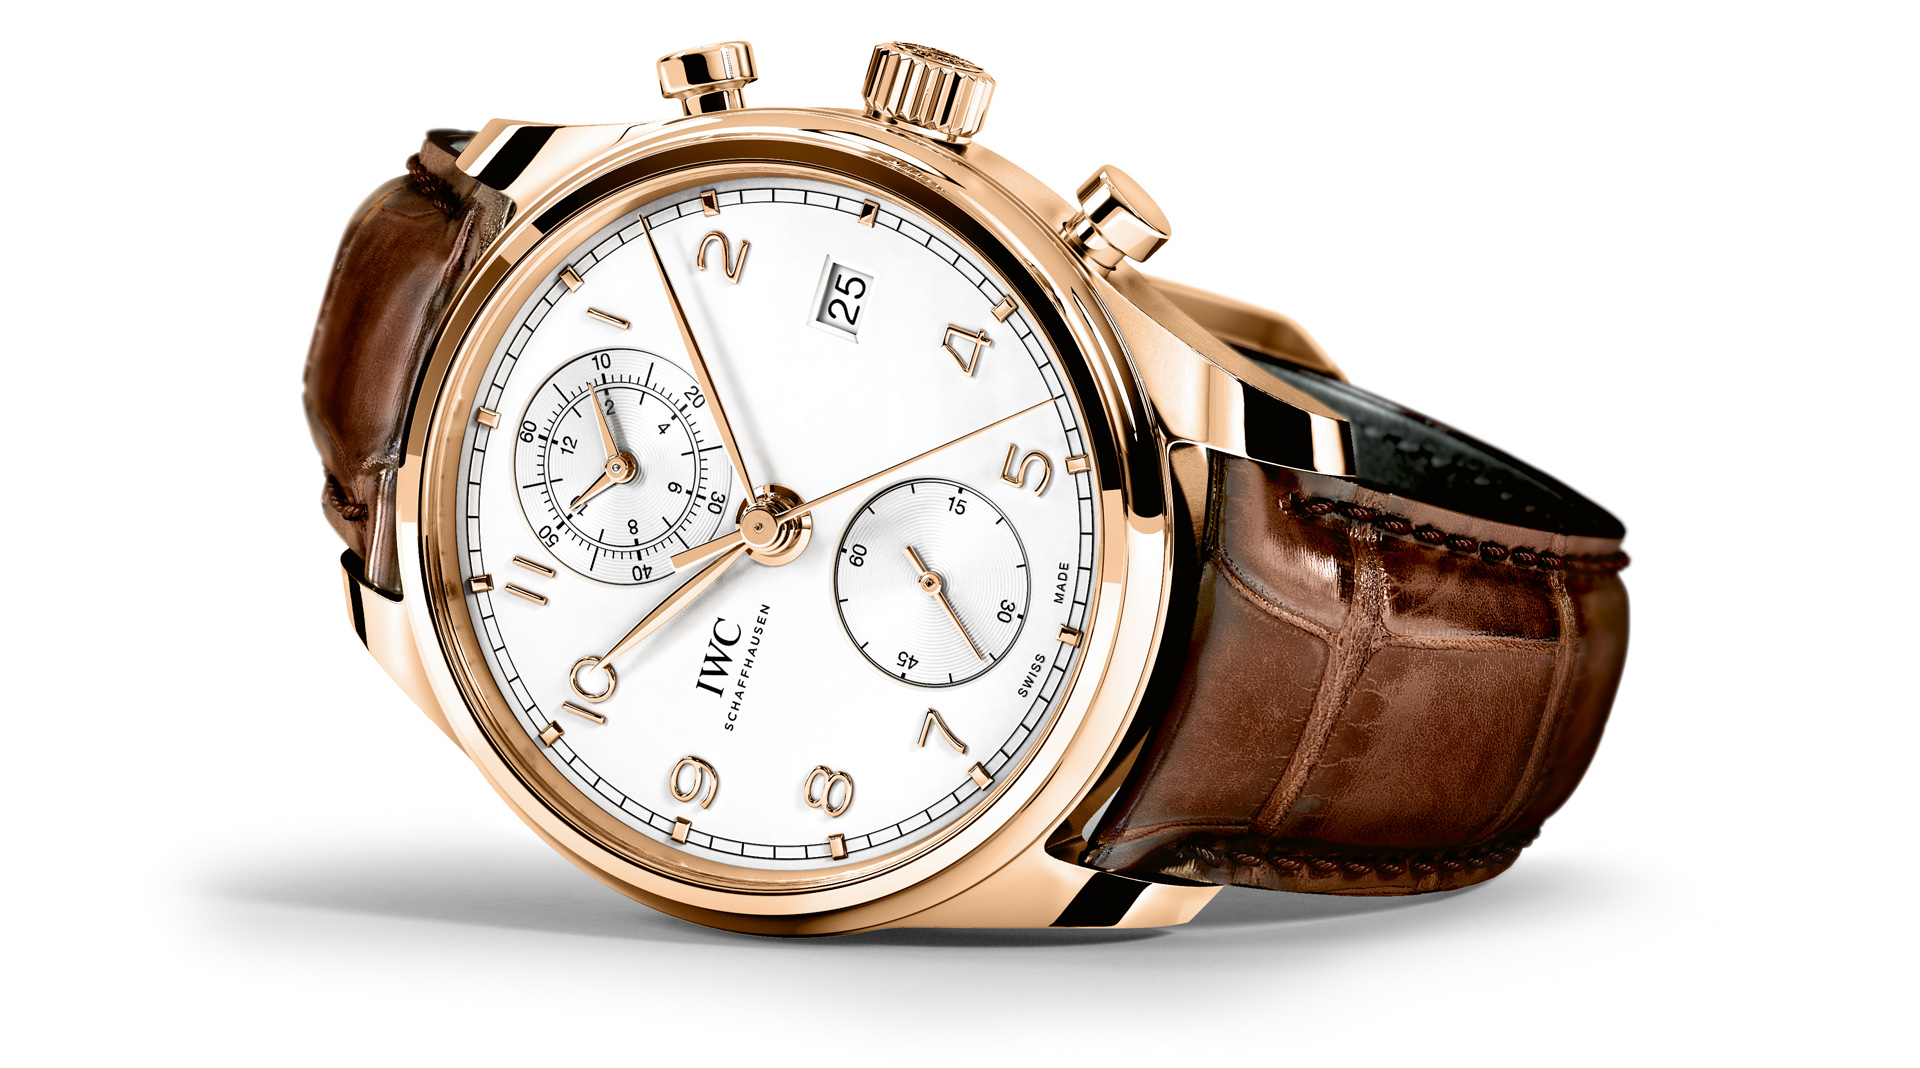 IWC Portugieser Chronograph Classic 2017 side